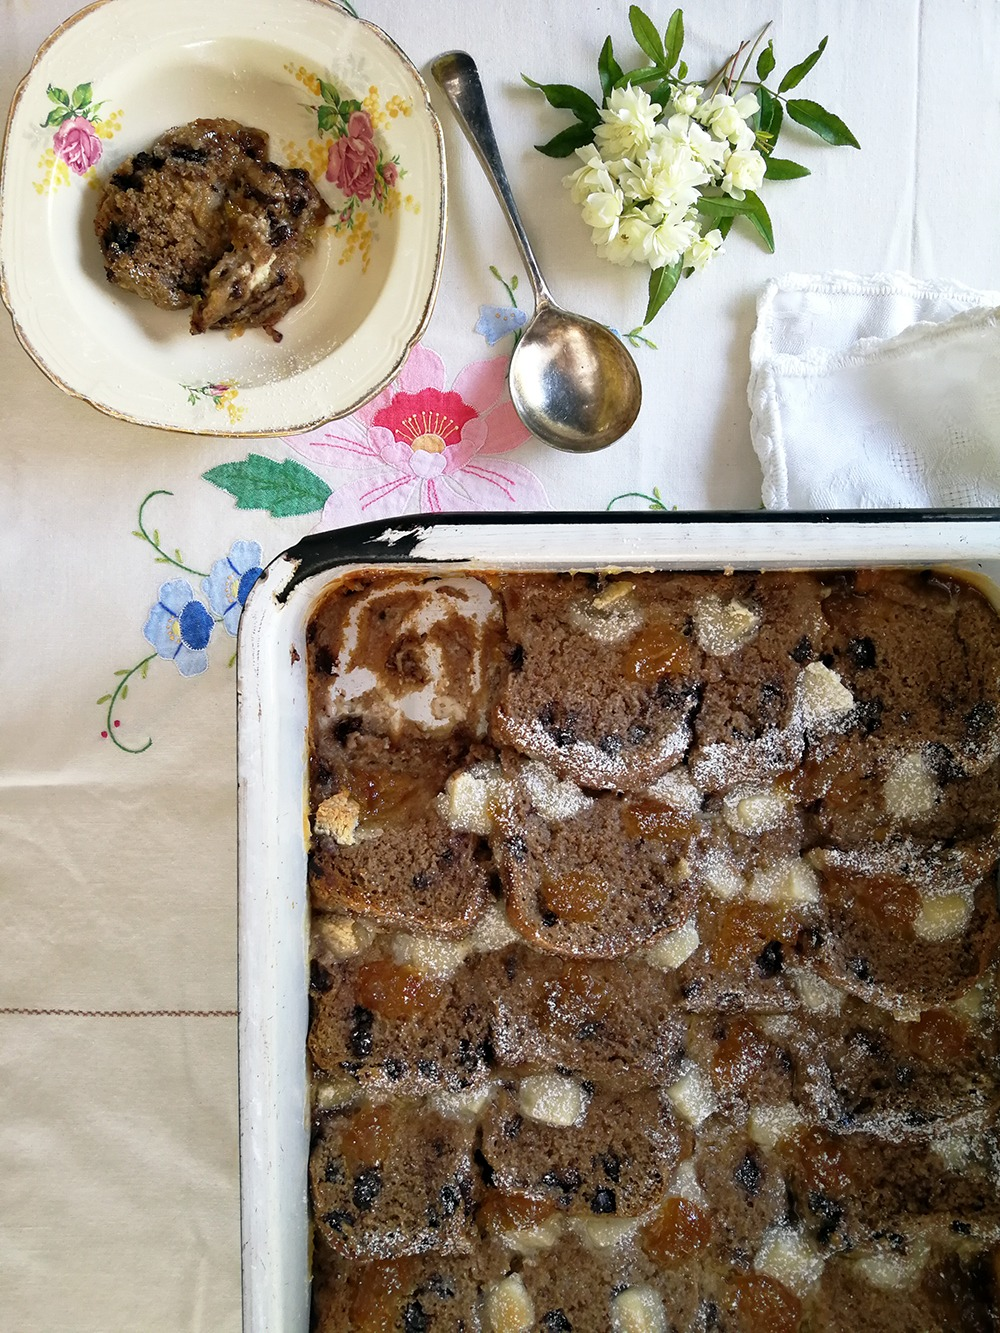 Bread and Butter Pudding with a Twist